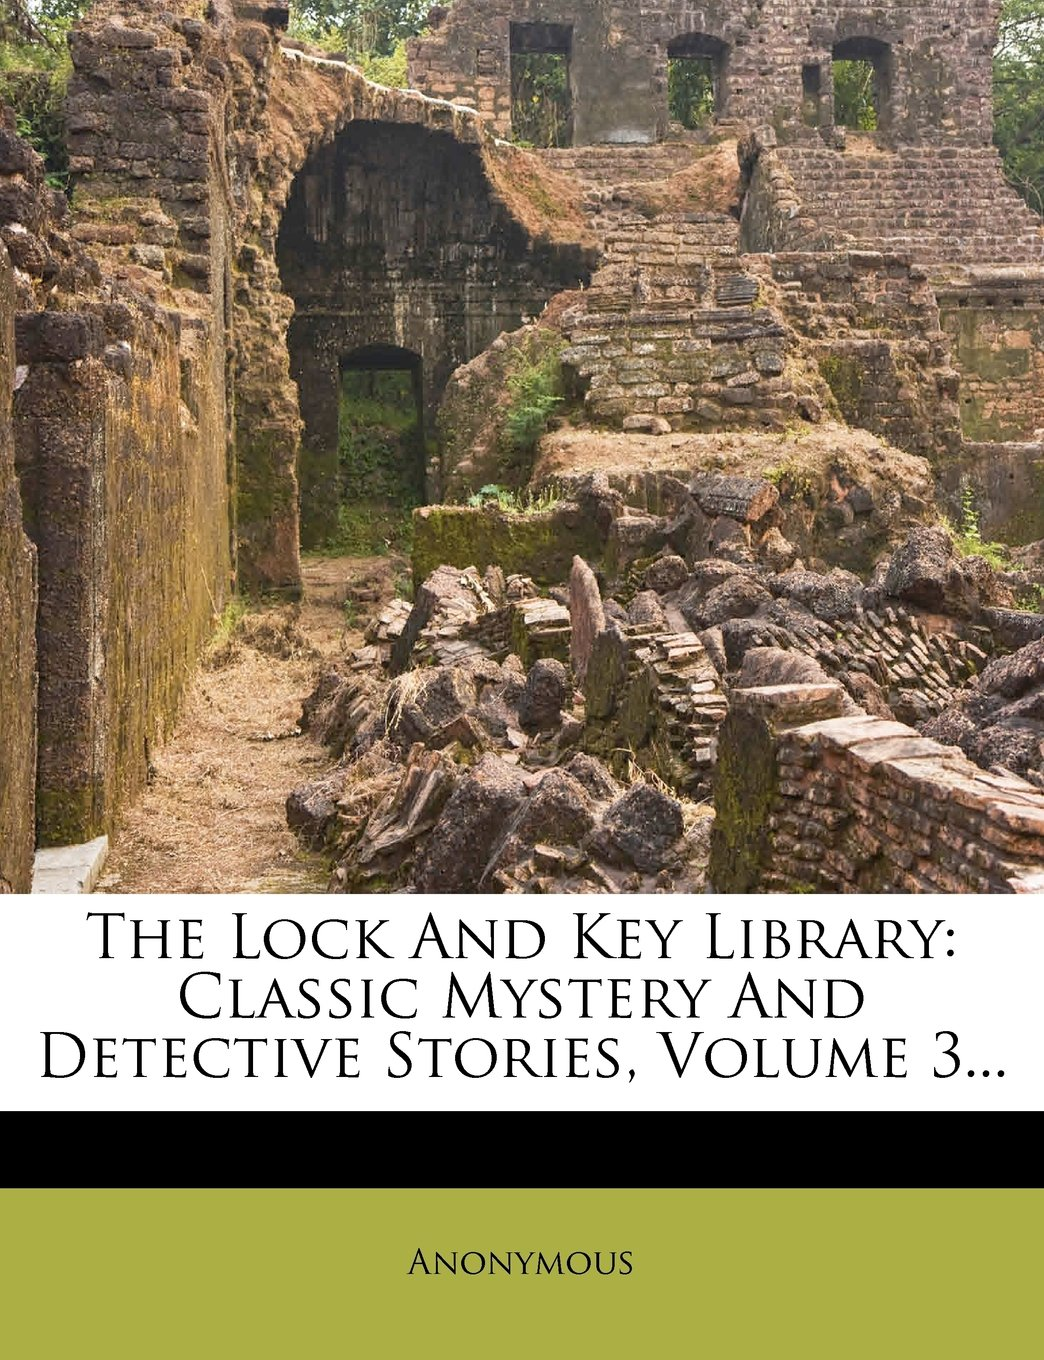 The Lock And Key Library: Classic Mystery And Detective Stories, Volume 3... ebook